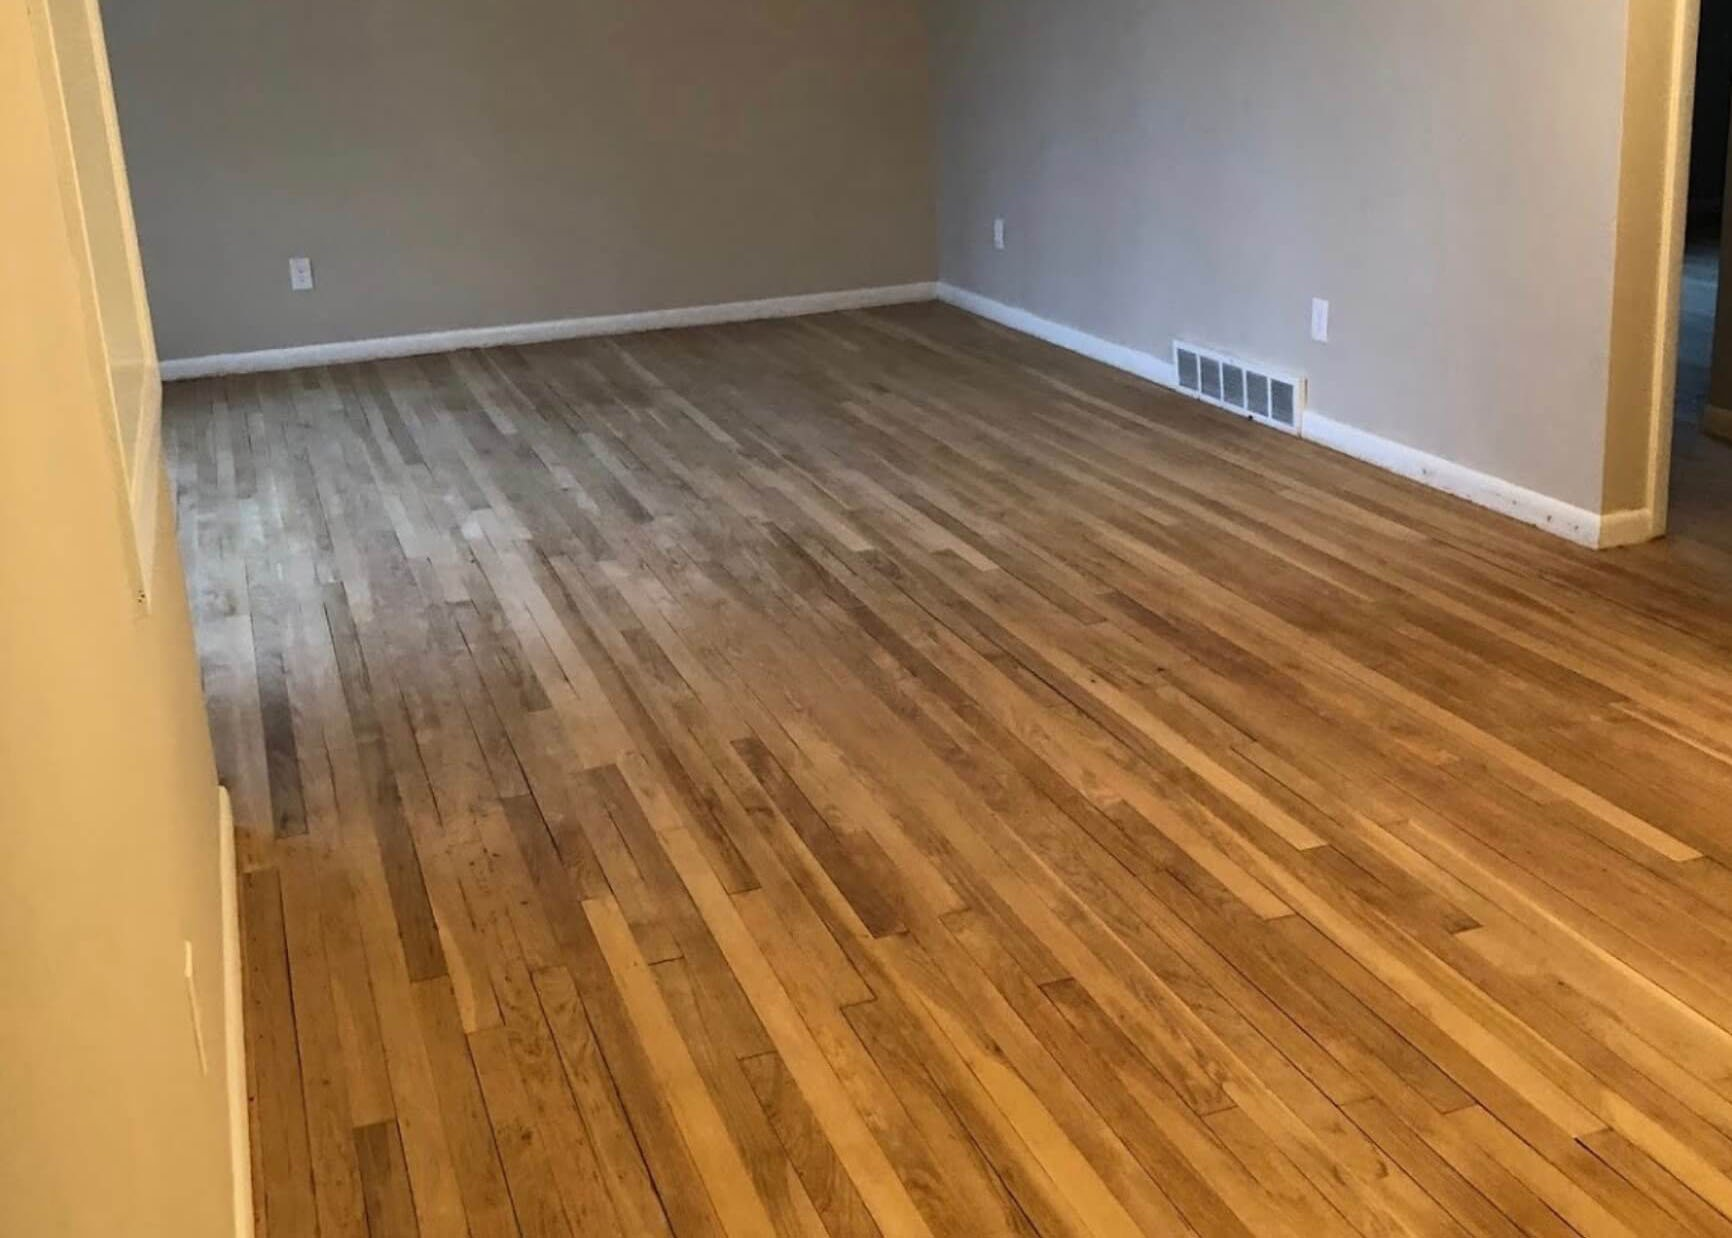 refinished hardwood flooring in cleveland, oh